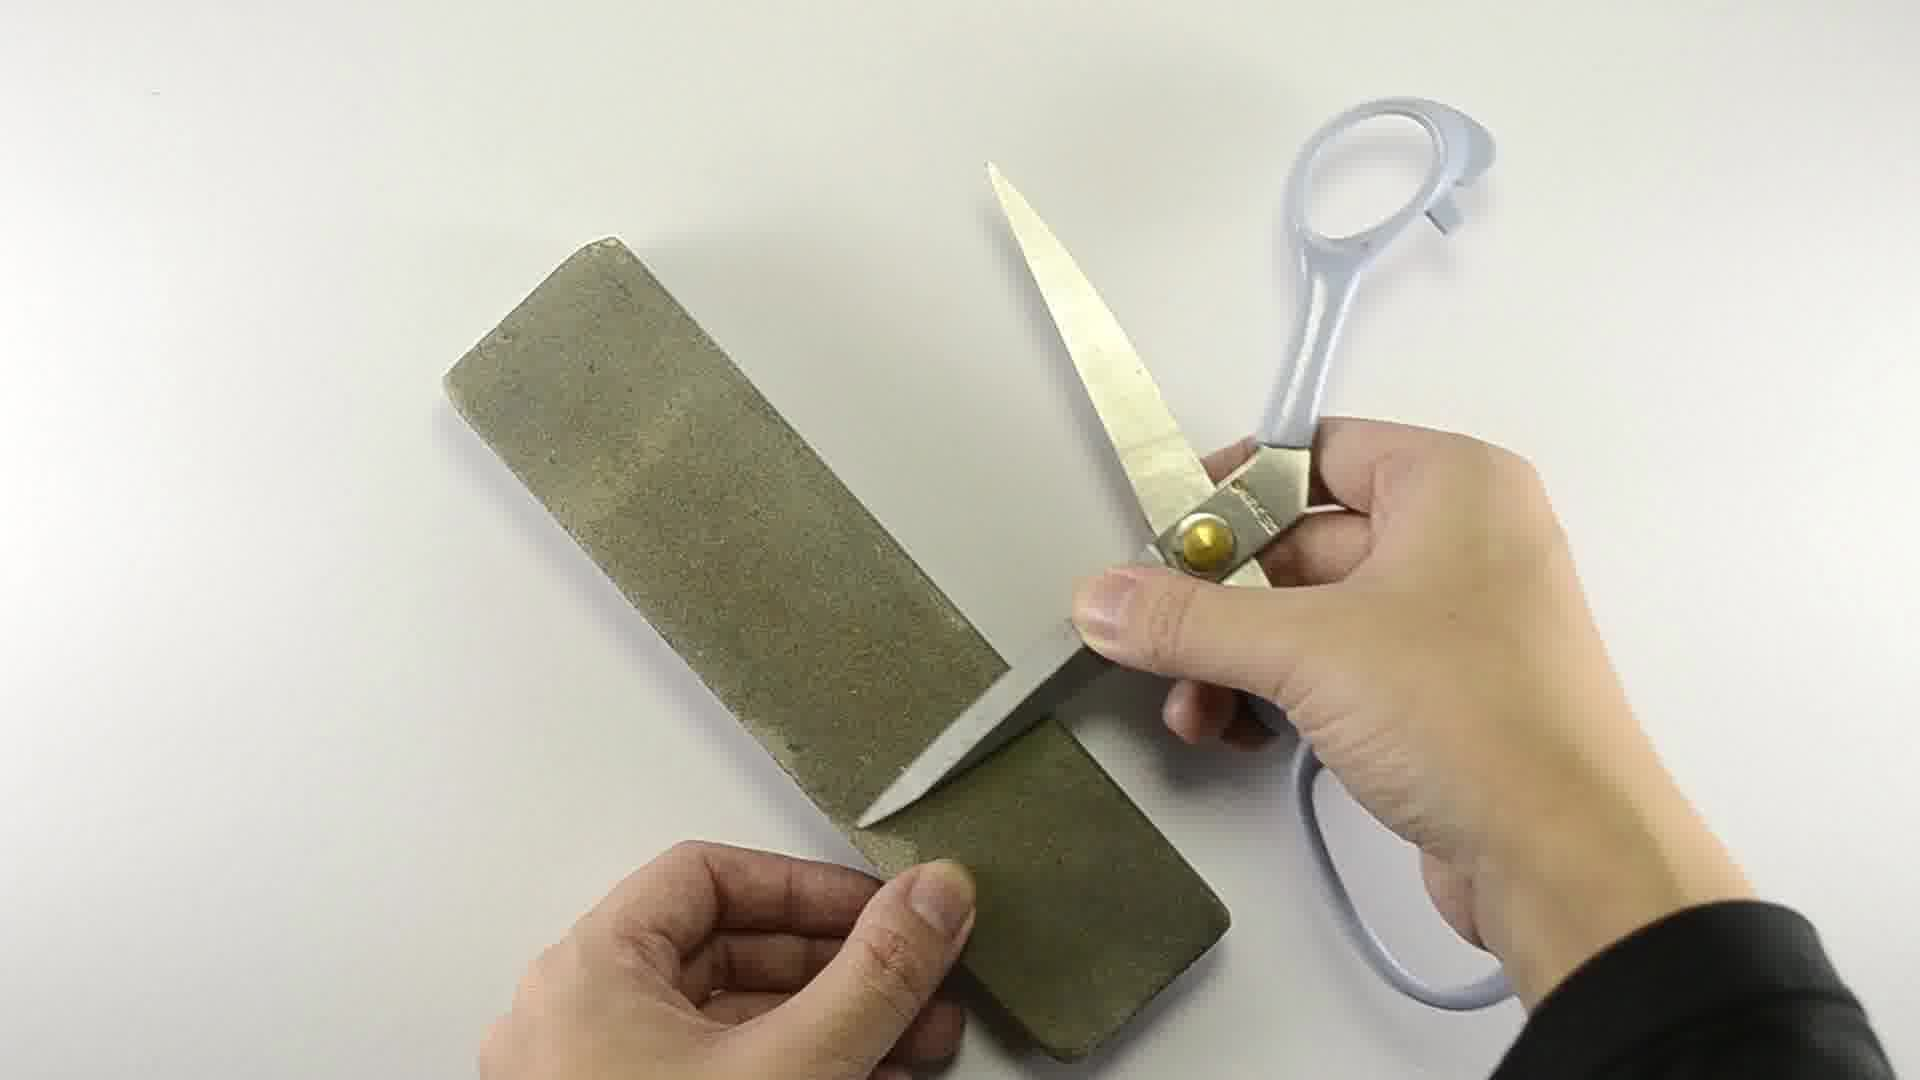 how to sharpen scissors with a file